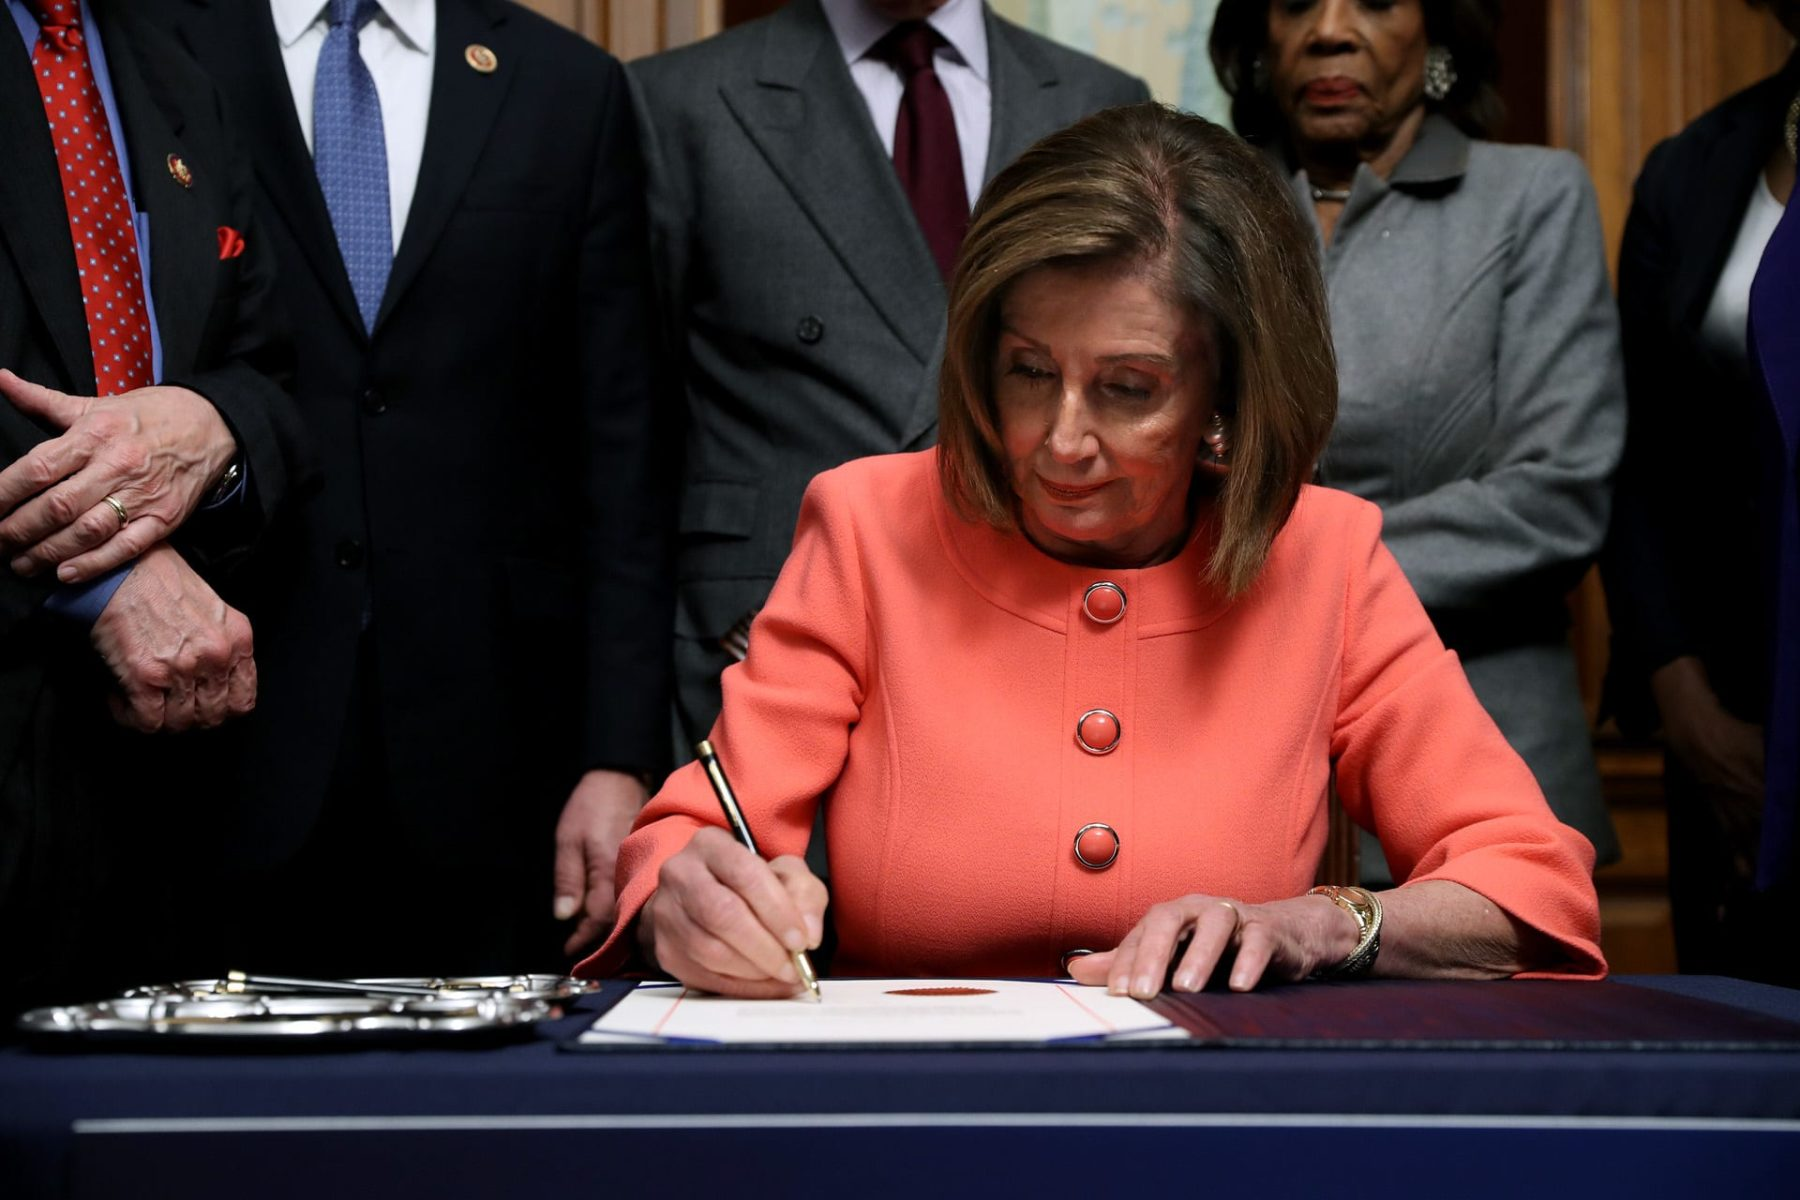 U.S. Speaker of the House Nancy Pelosi (D-CA) signs the articles of impeachment.